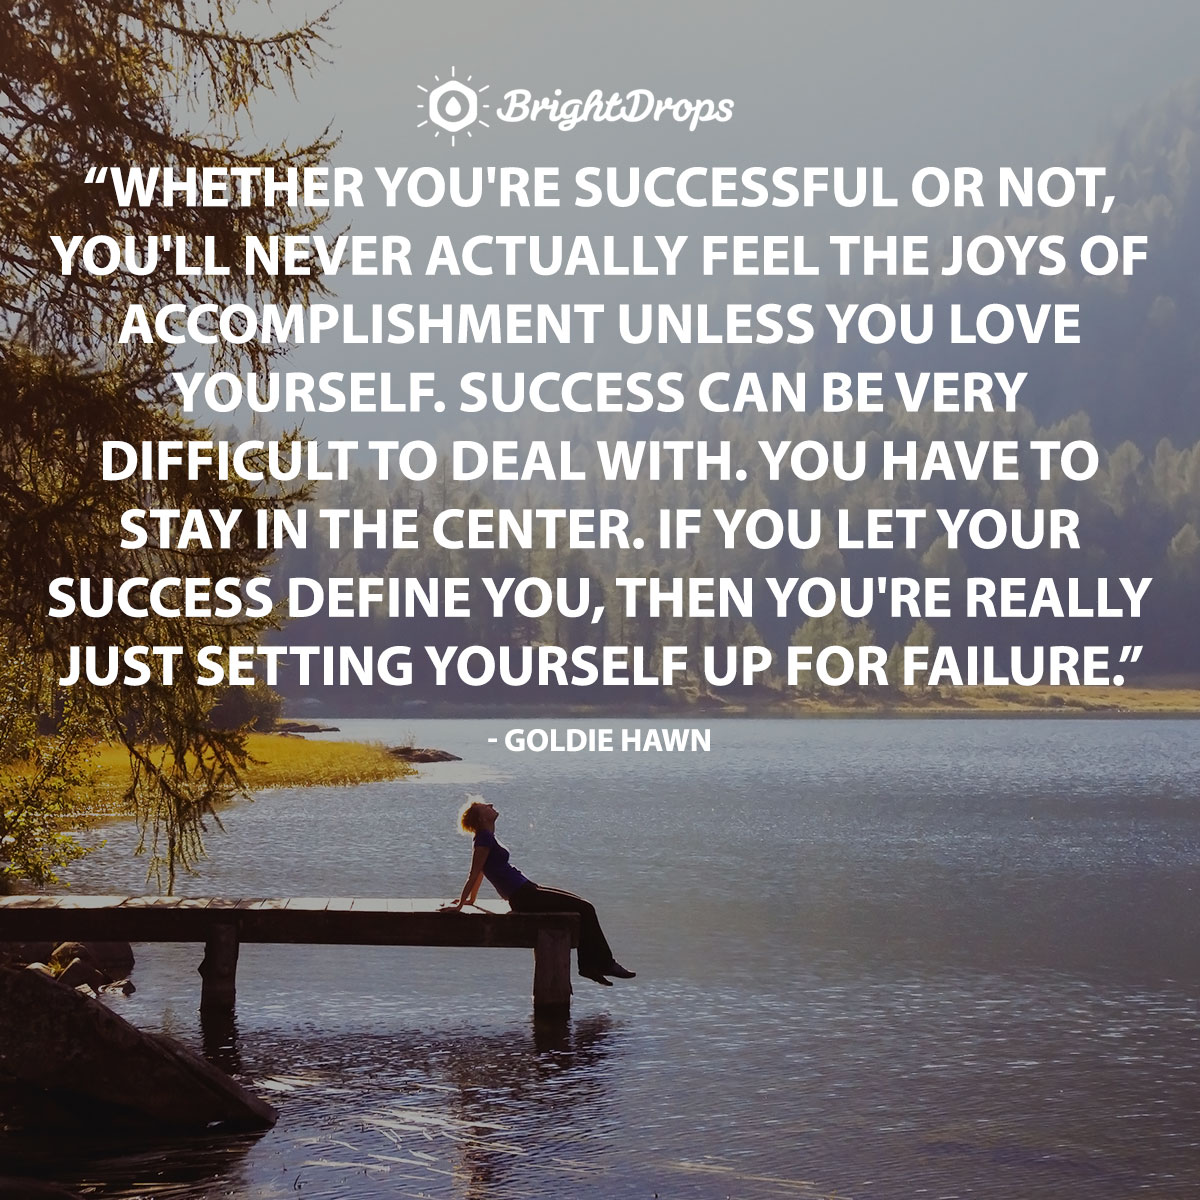 Whether you're successful or not, you will never actually feel the joys of accomplishment unless you love yourself. Success can be very difficult to deal with. You have to stay in the center. If you let your success define you, then you are really just setting yourself up for failure. - Goldie hawn